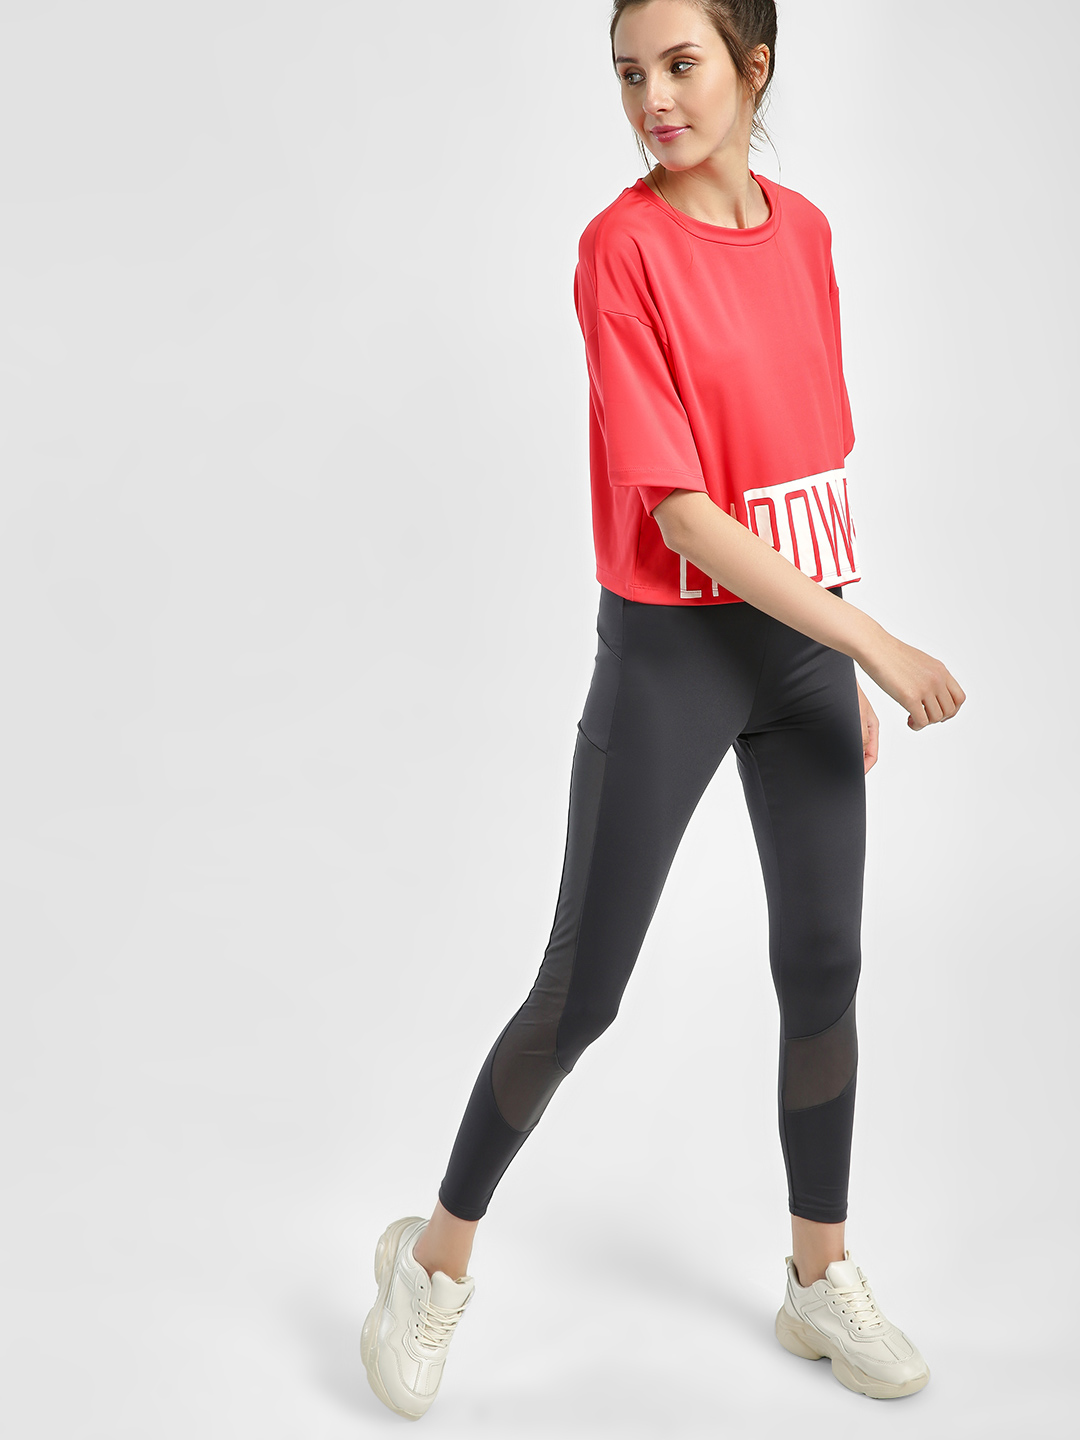 K ACTIVE Charcoal KOOVS Mesh Panel Cropped Leggings 1